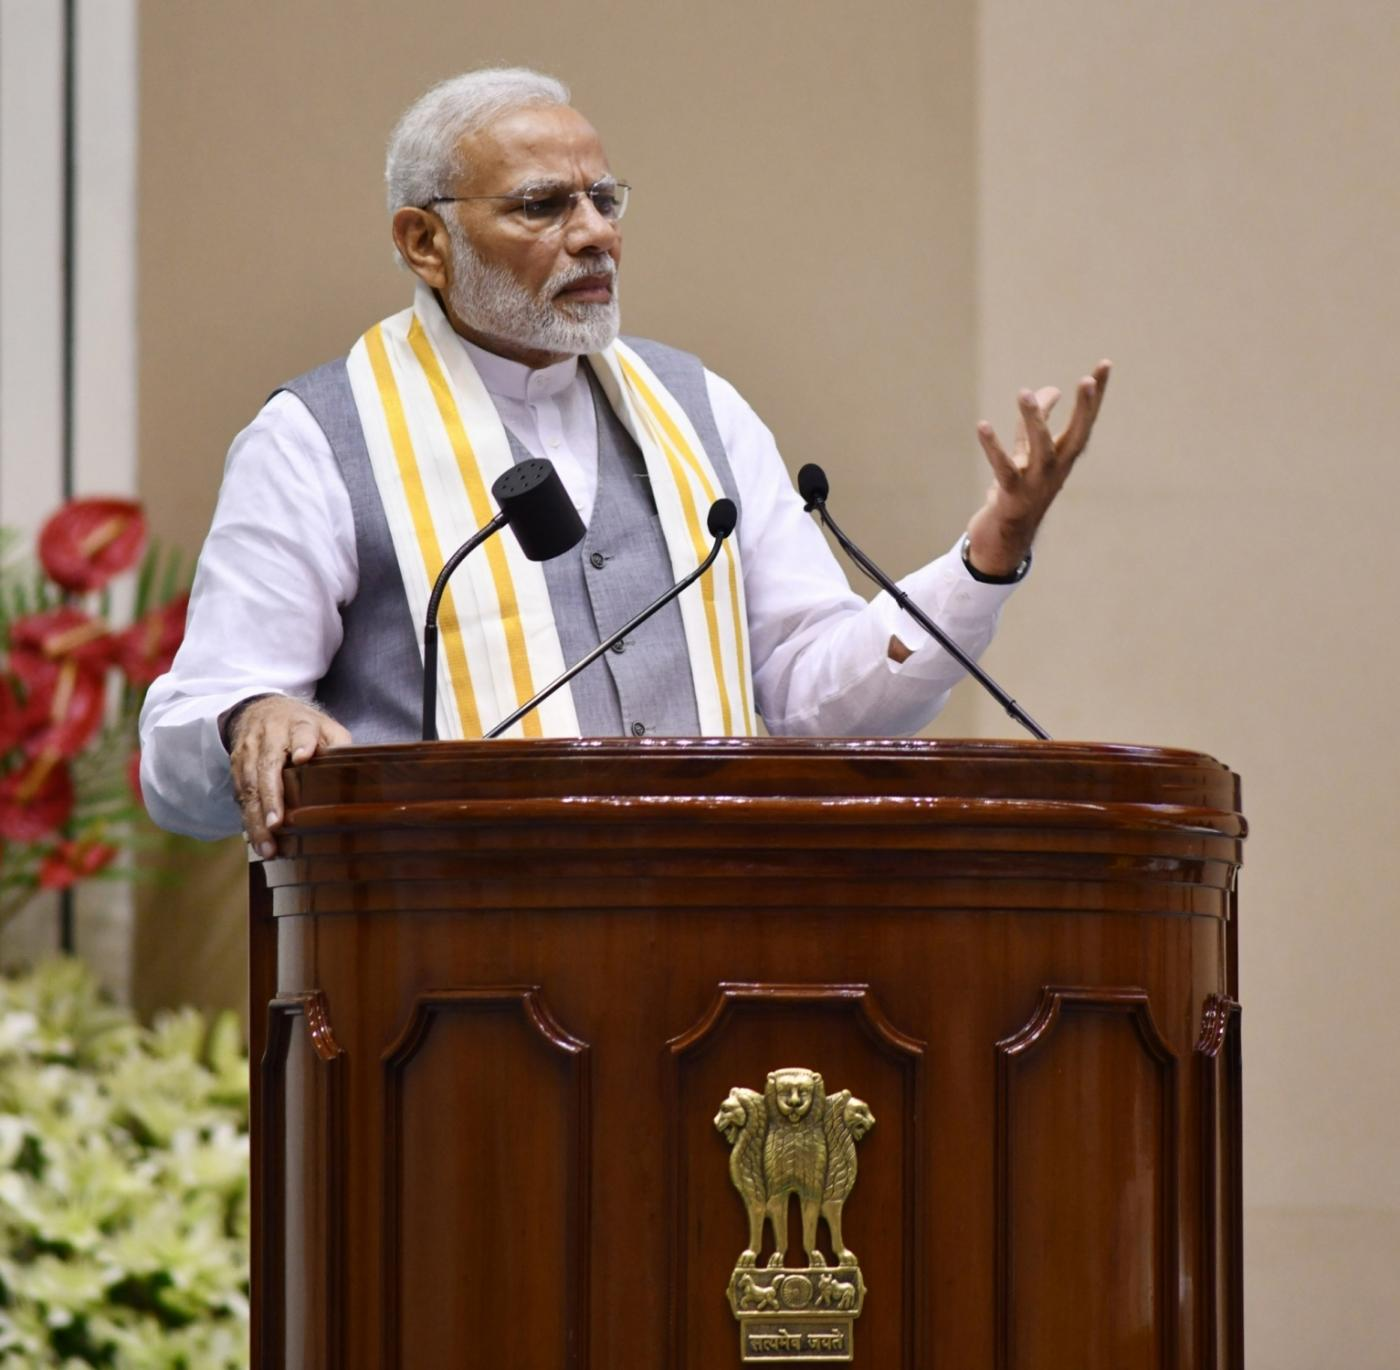 """New Delhi: Prime Minister Narendra Modi addresses at the launch of """"Moving On... Moving Forward: A Year In Office"""" - a book marking the completion of Naidu's one year as the Vice President and the Rajya Sabha Chairman; in New Delhi on Sept 2, 2018. (Photo: IANS/PIB) by ."""